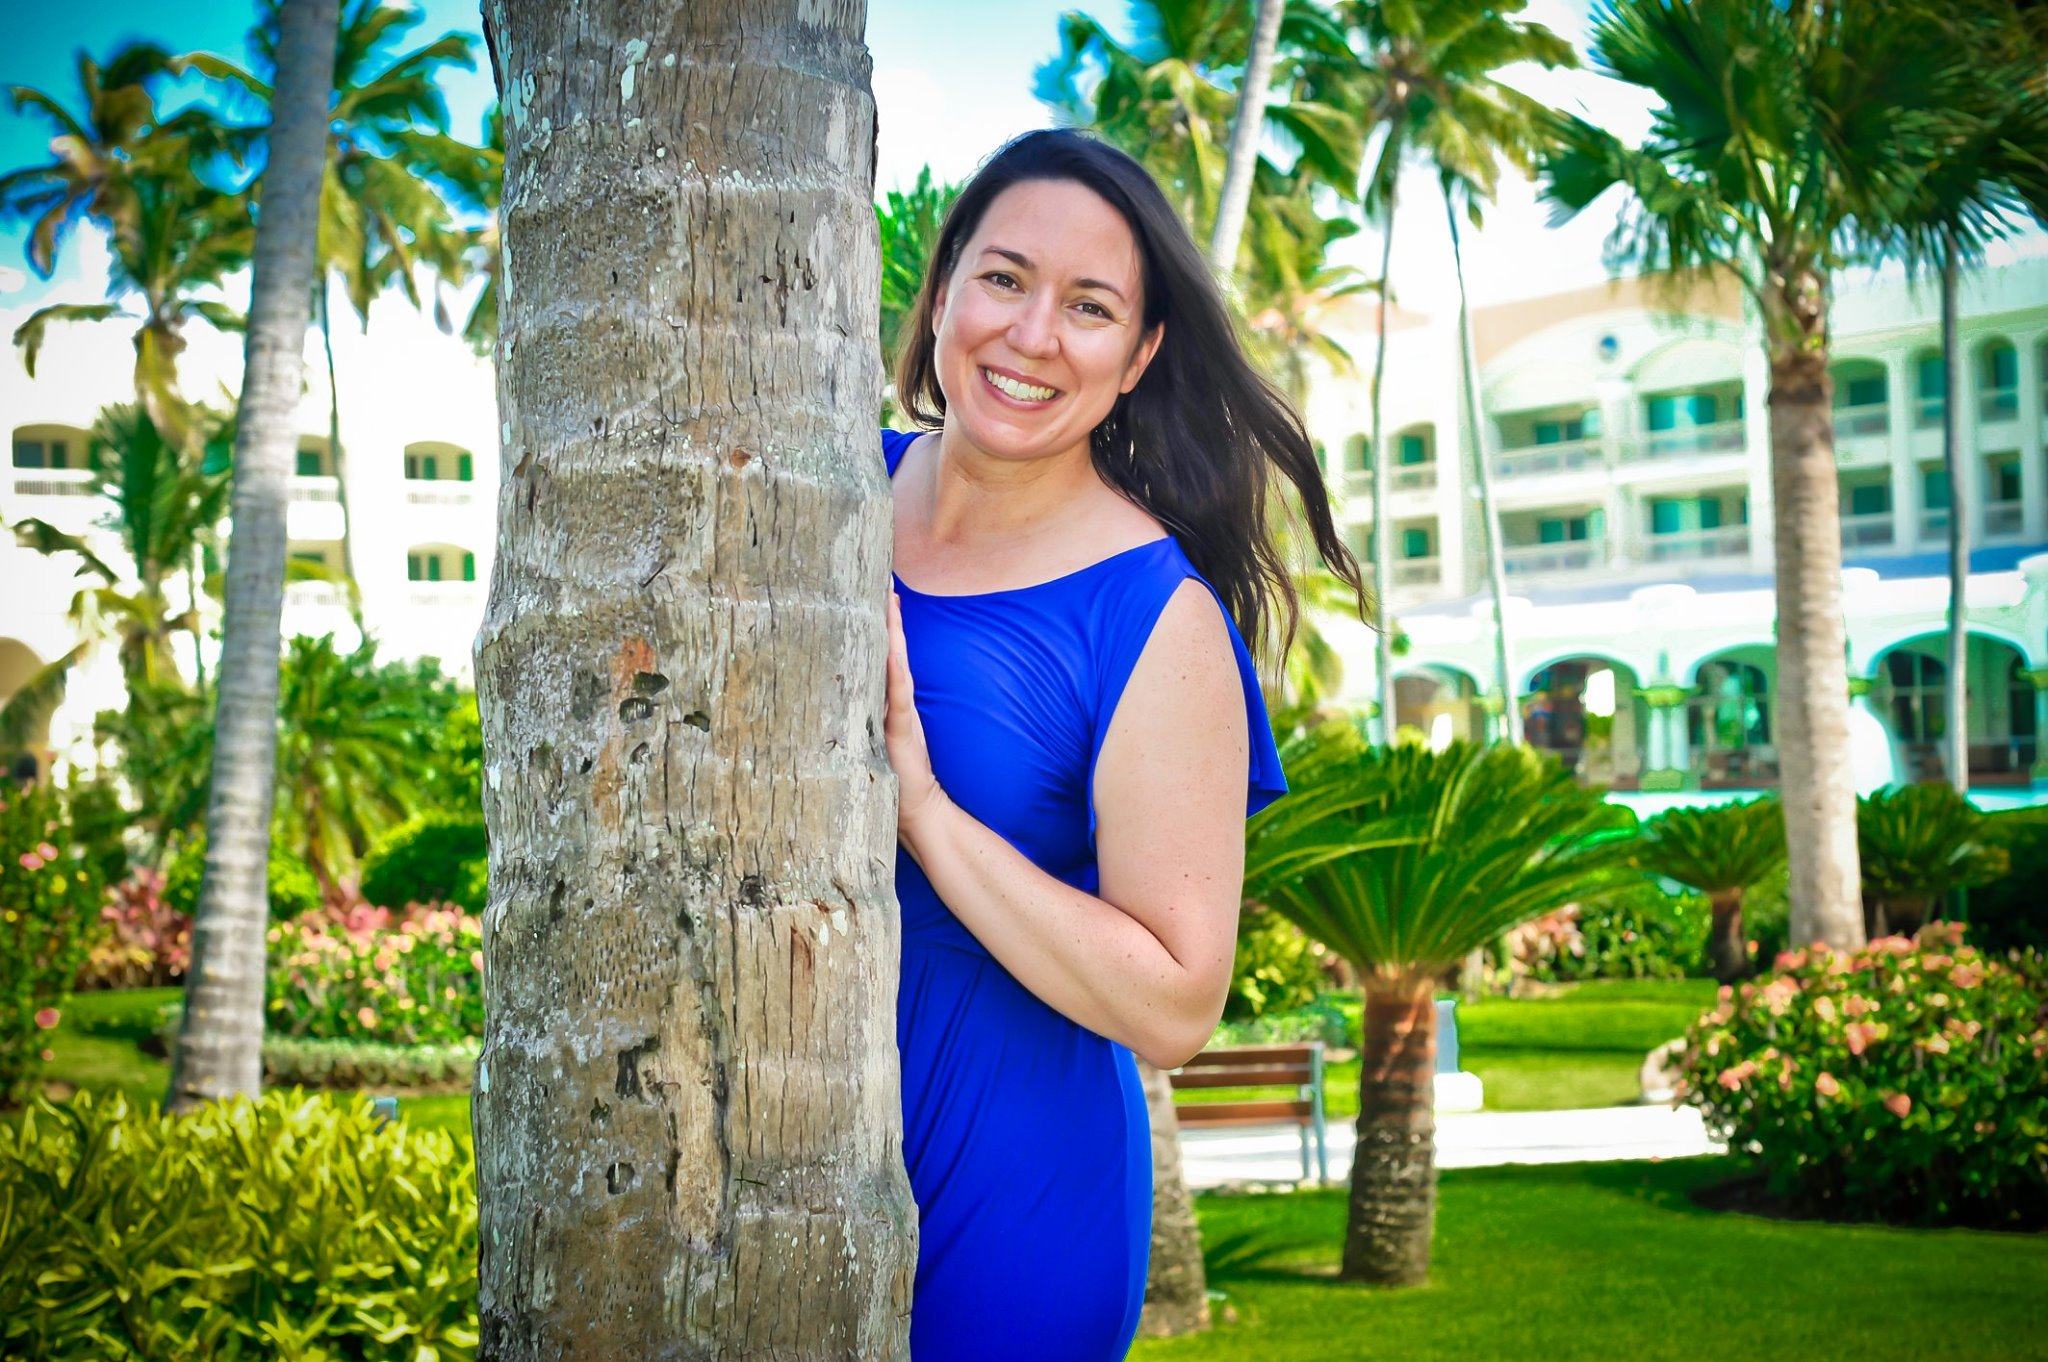 Woman (Colette) in a blue dress leaning out from behind a palm tree at a hotel in the Caribbean.